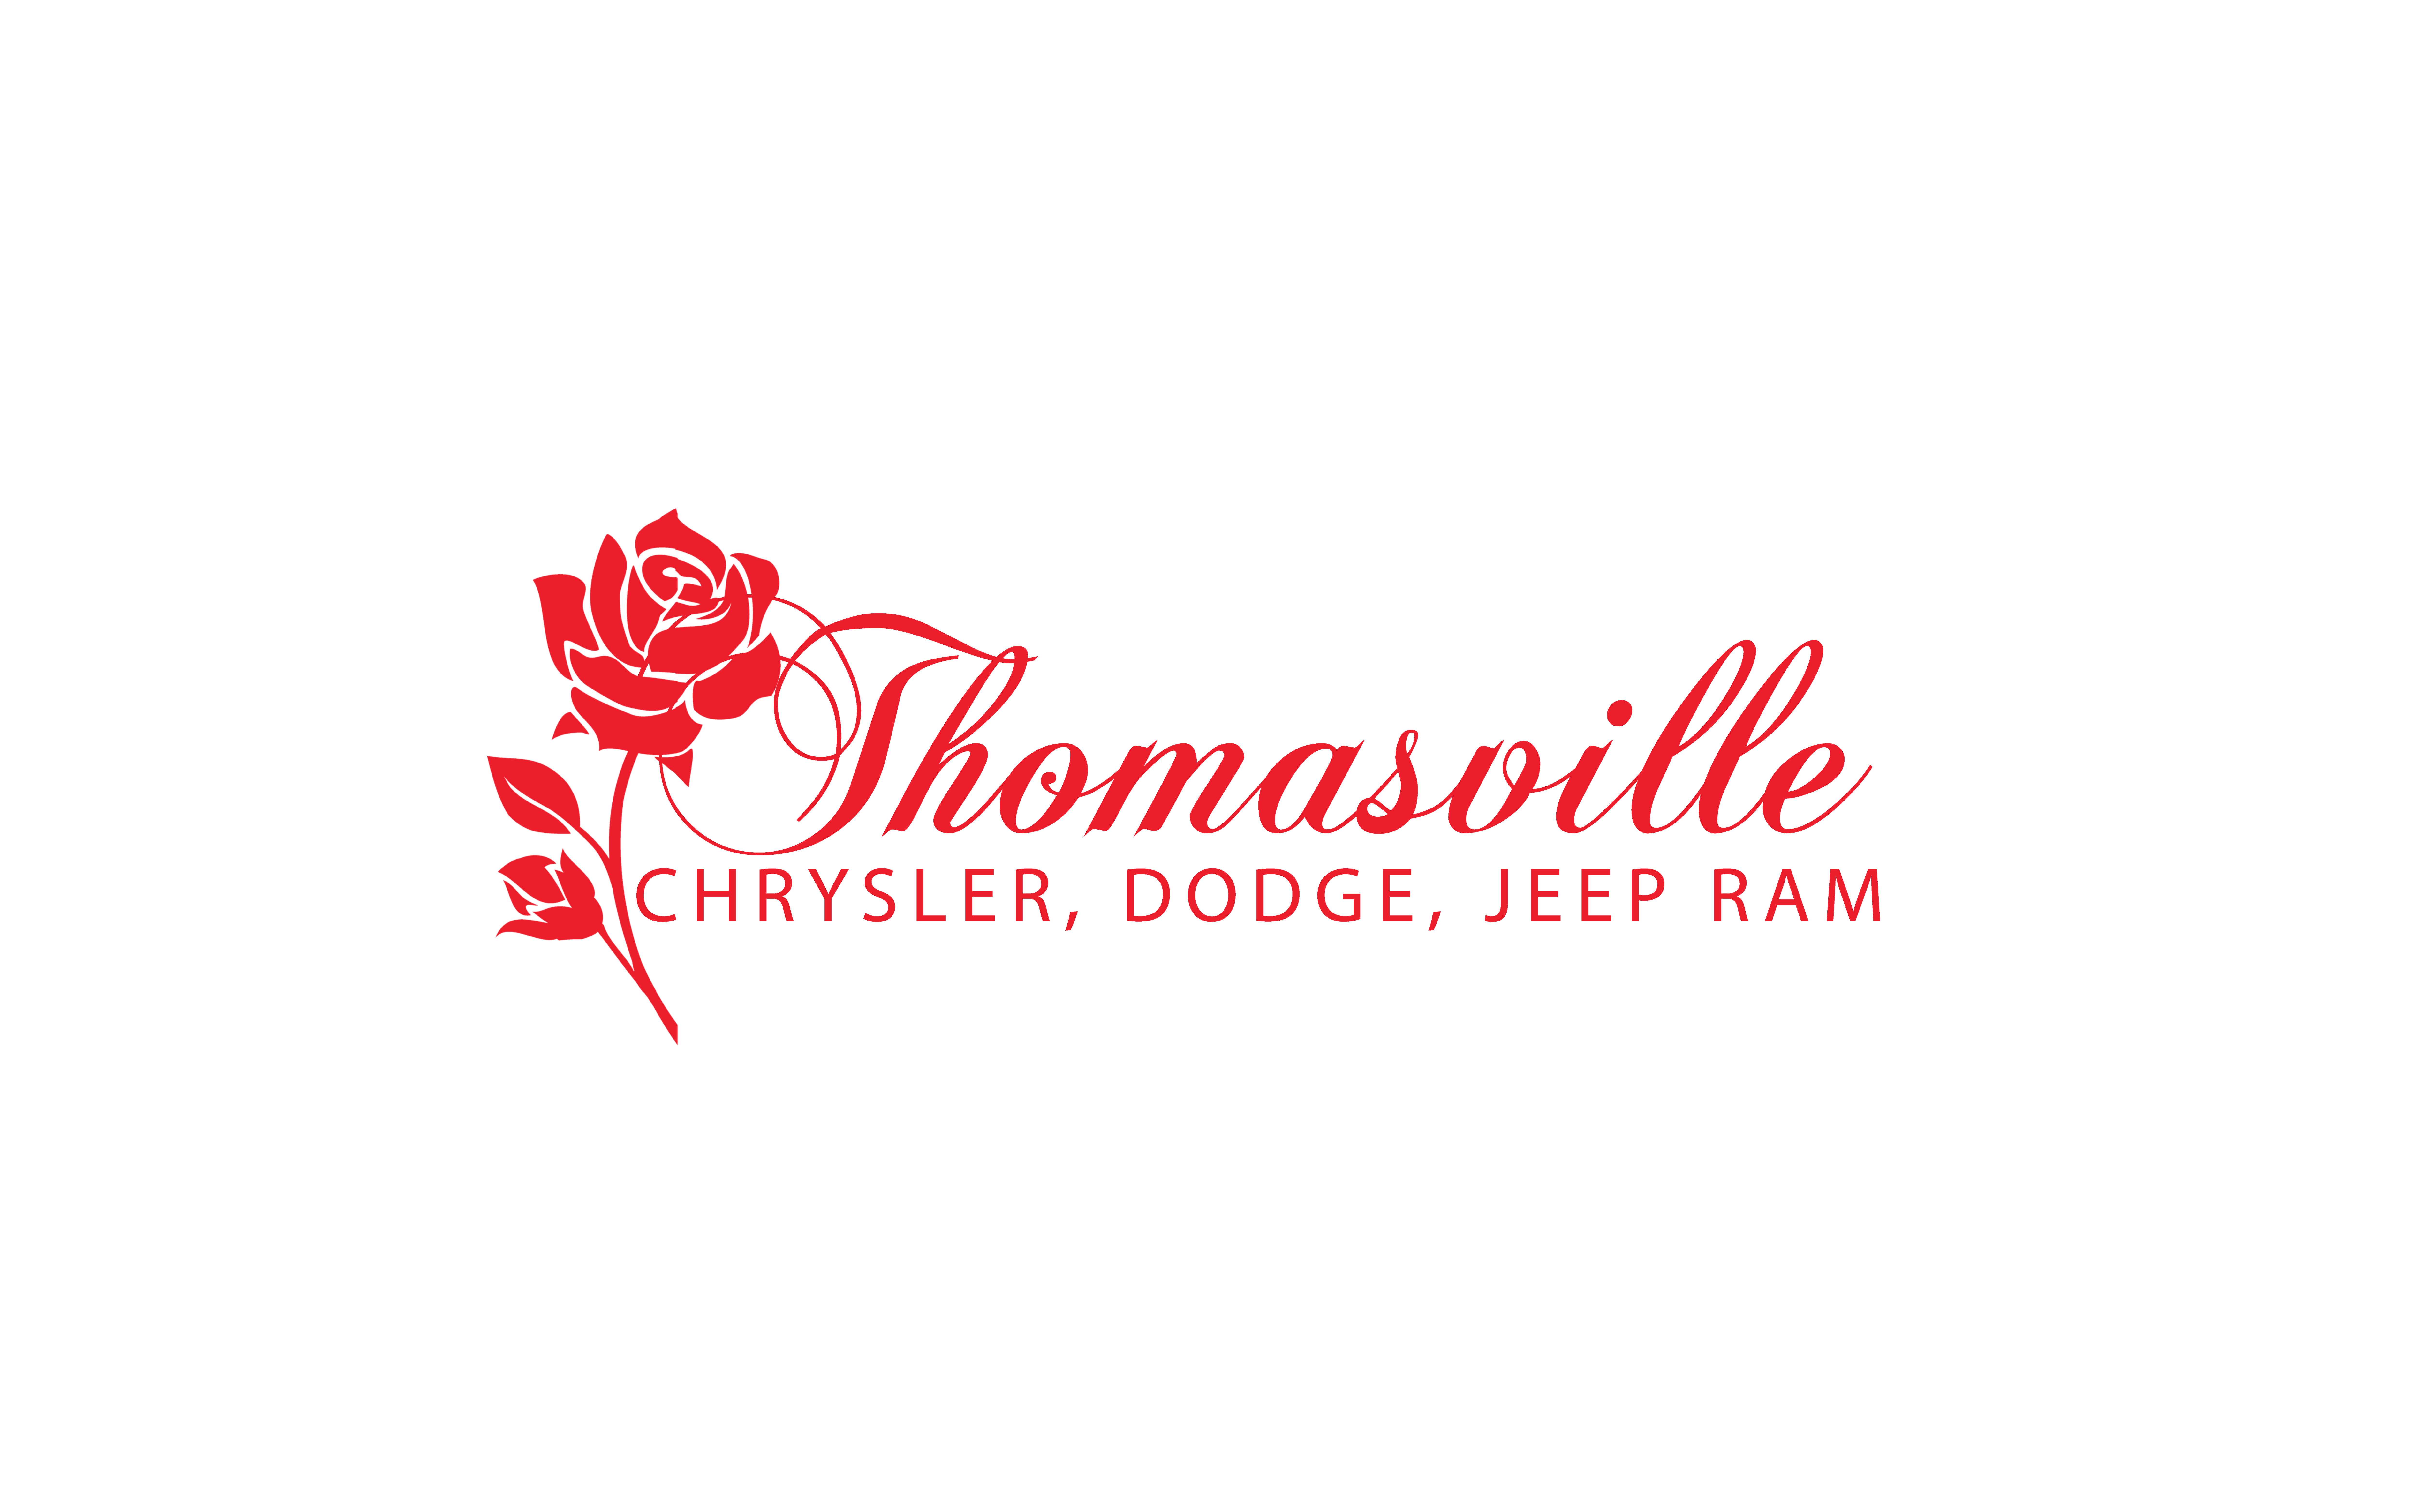 Thomasville Chrysler Dodge Jeep Ram